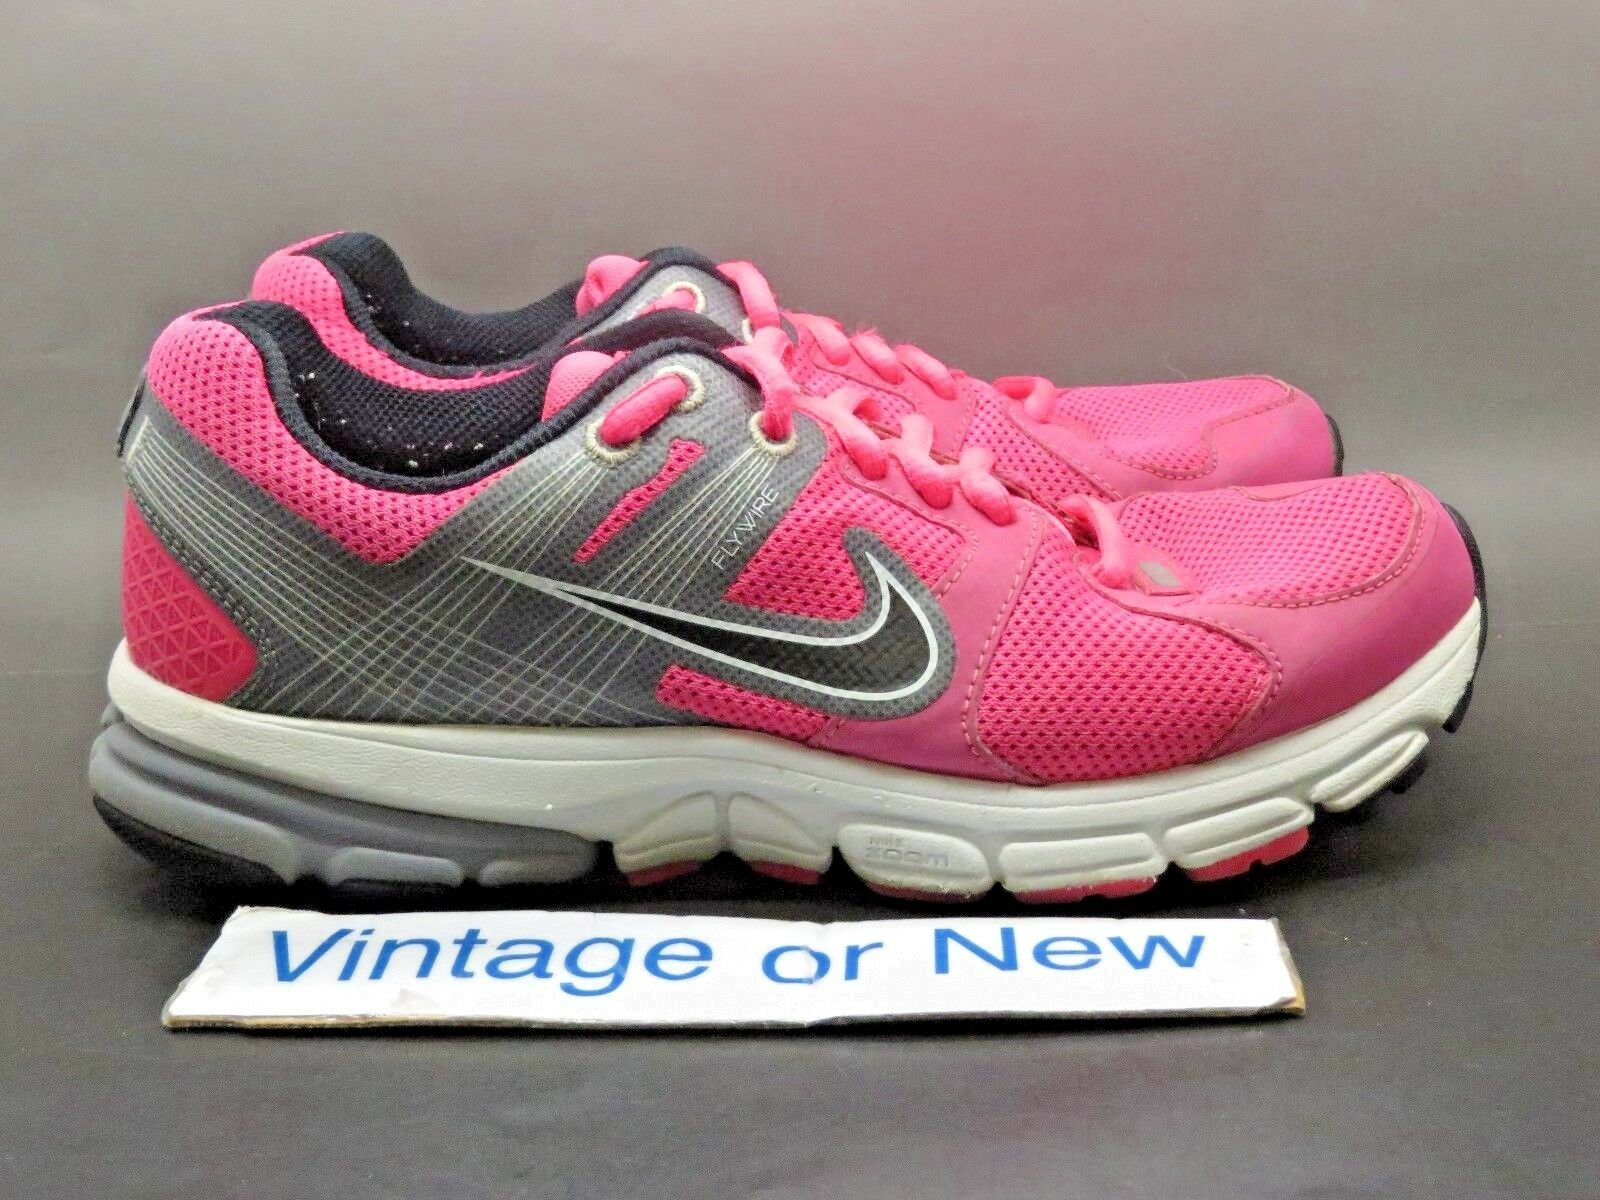 Women's Nike Zoom Structure+ 15 Pink Grey Black Running Shoes 472506-601 Price reduction The latest discount shoes for men and women